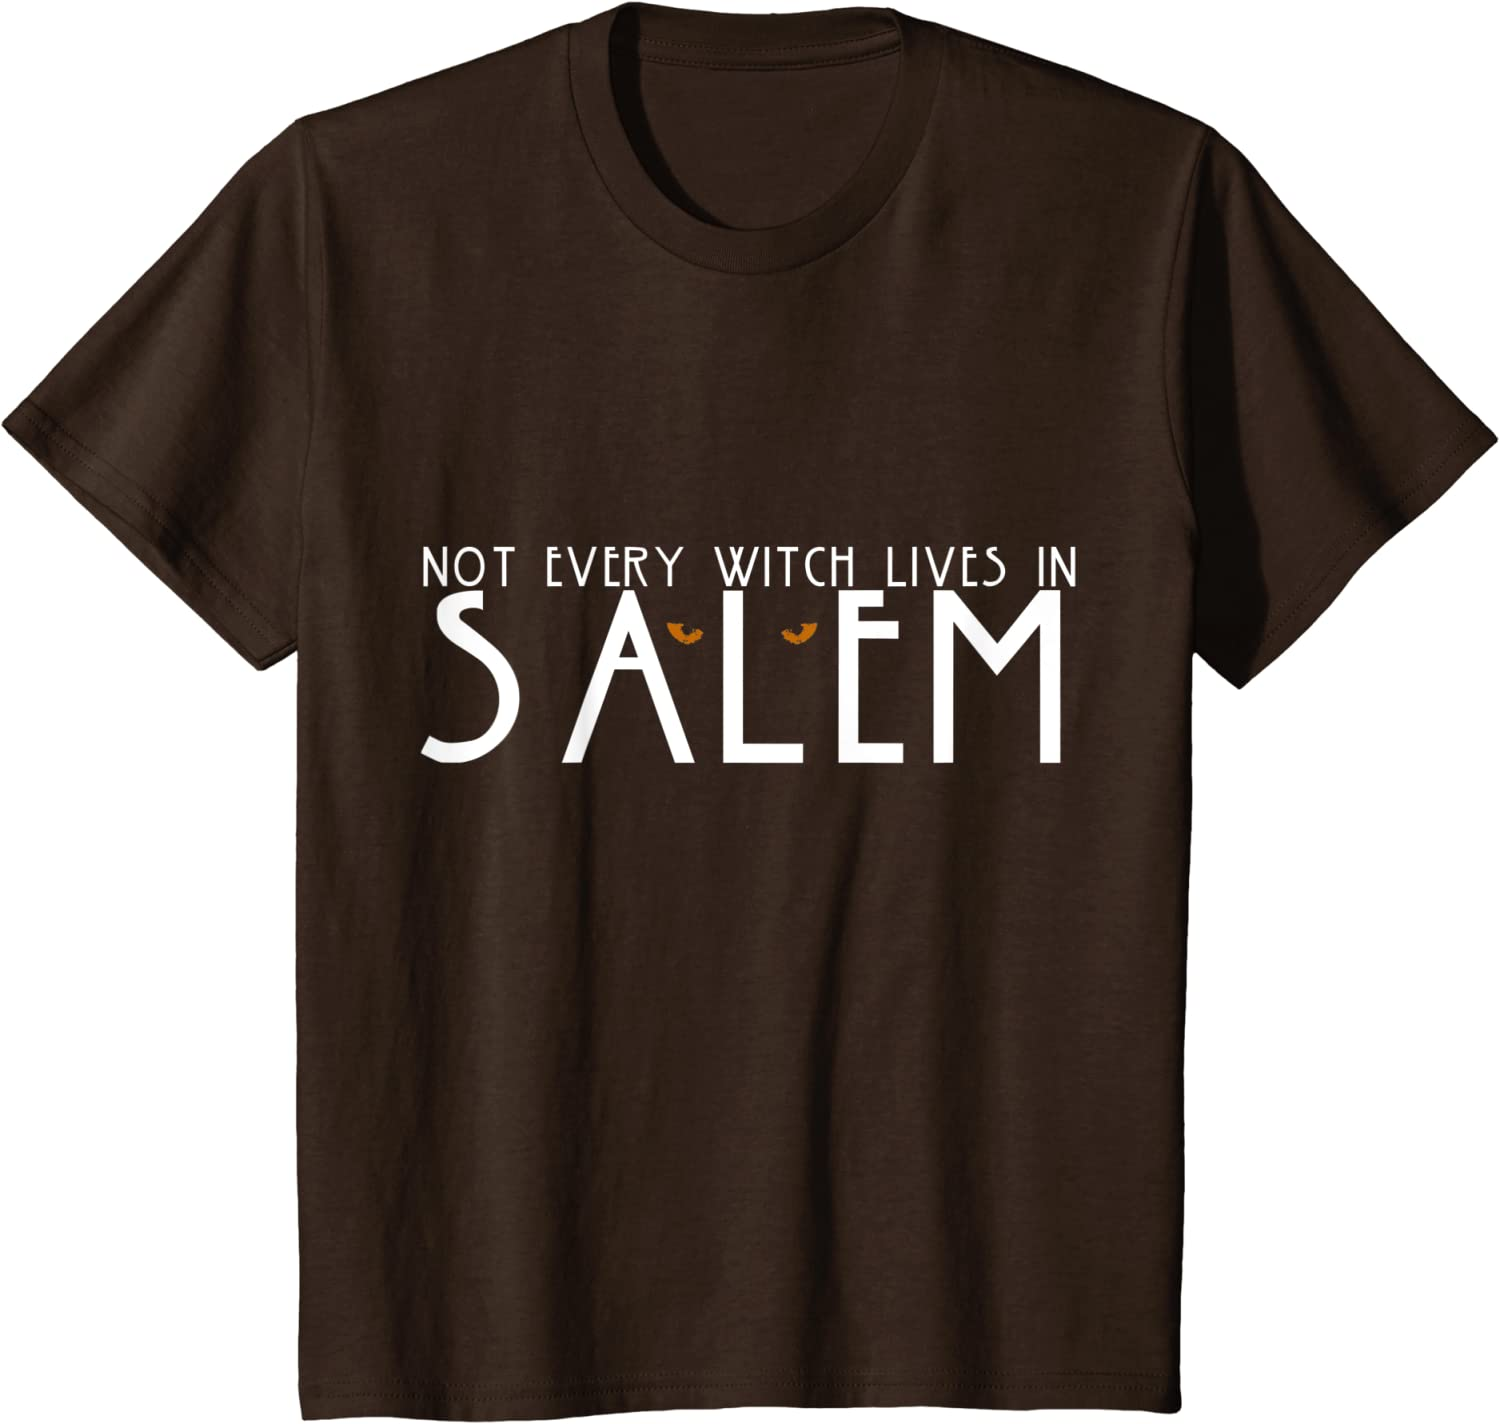 Not Every Witch Lives In Salem Shirt Clothing Amazon Com